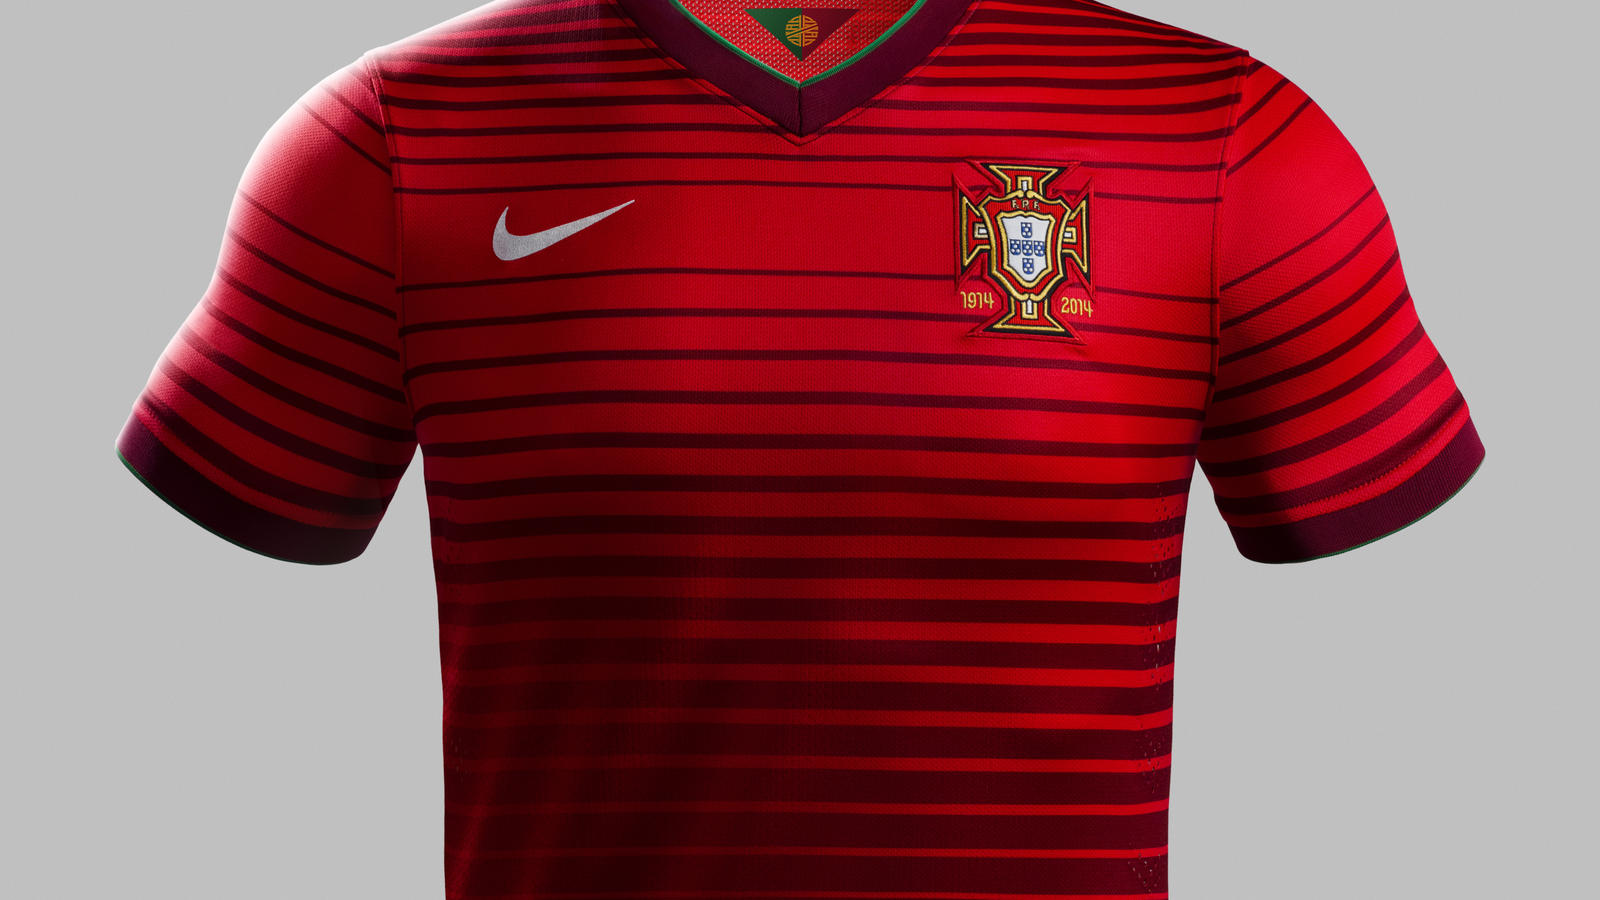 chaussures de sport e0d52 68de0 Portugal Unveils New Nike Home Kit for 2014 - Nike News